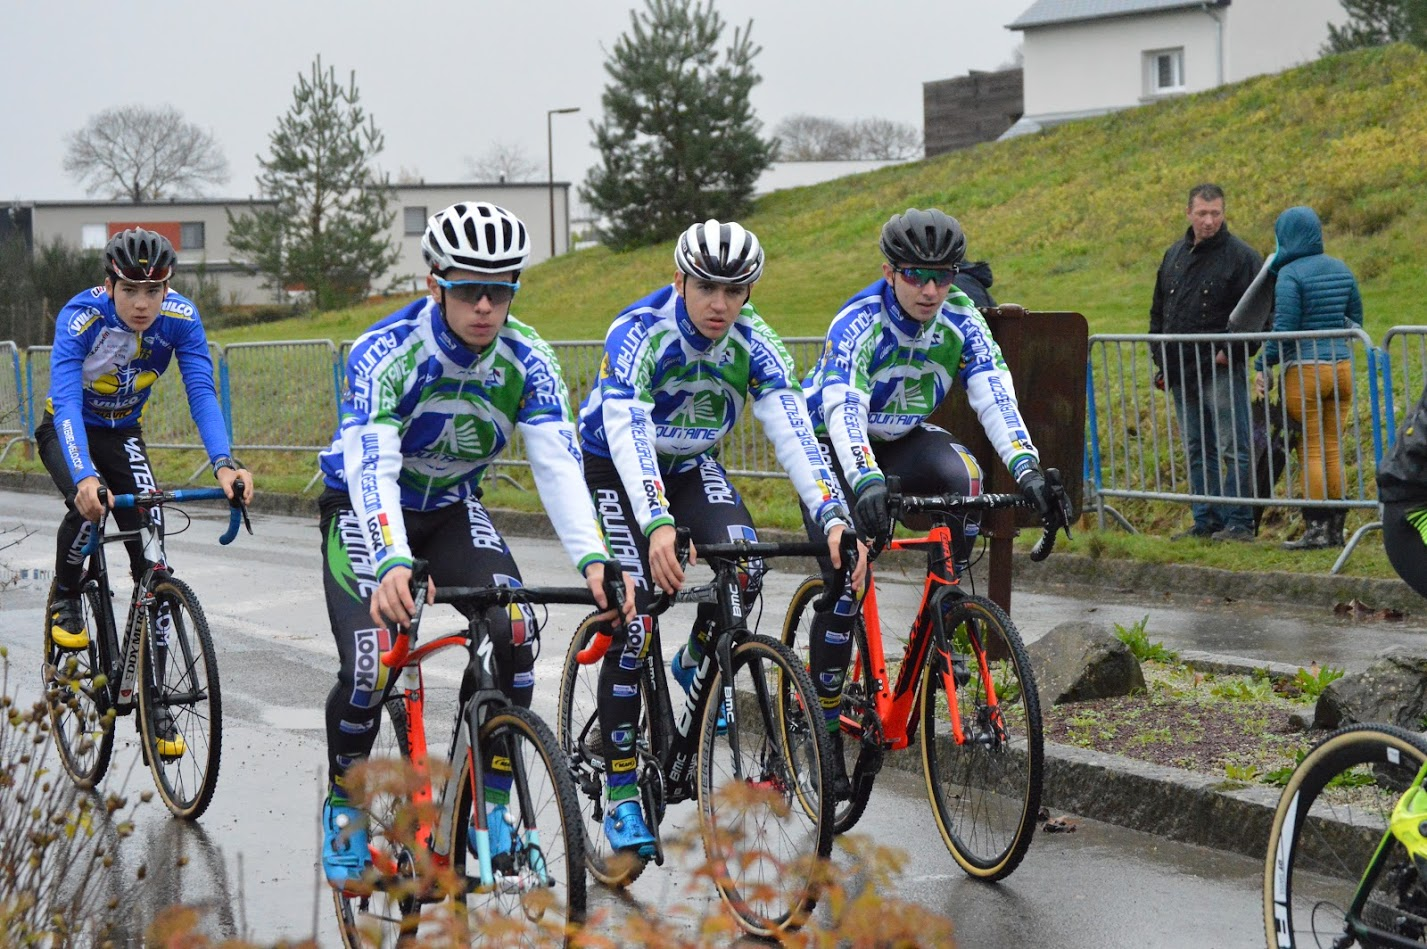 Sud gironde cyclisme r sultats photos coupe de france la m zi re - Resultats de la coupe de france ...